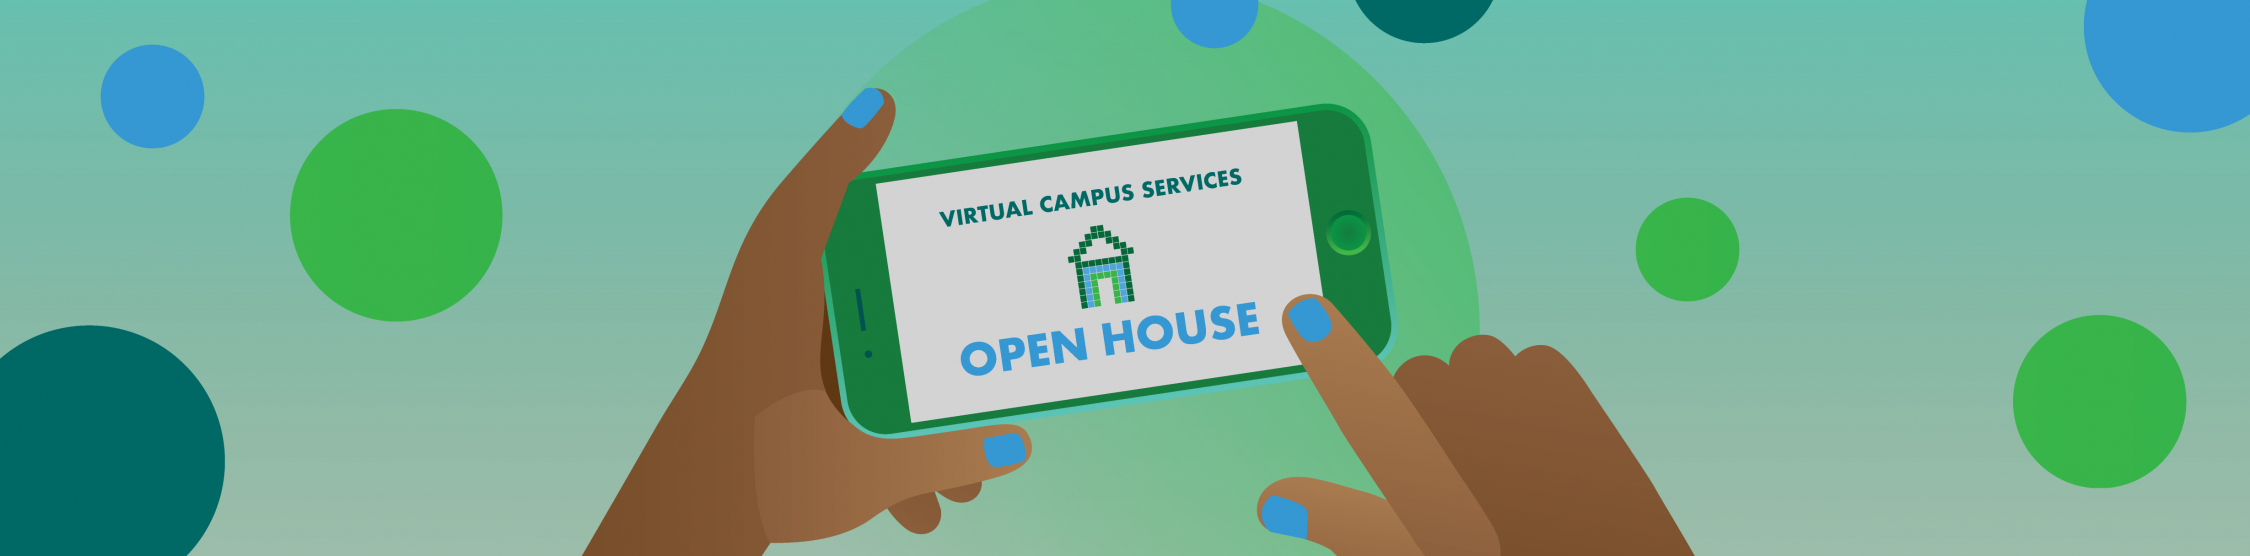 Graphic showing a first-person point-of-view of someone looking at their smartphone for an advertisement for Virtual Campus Services Open House.